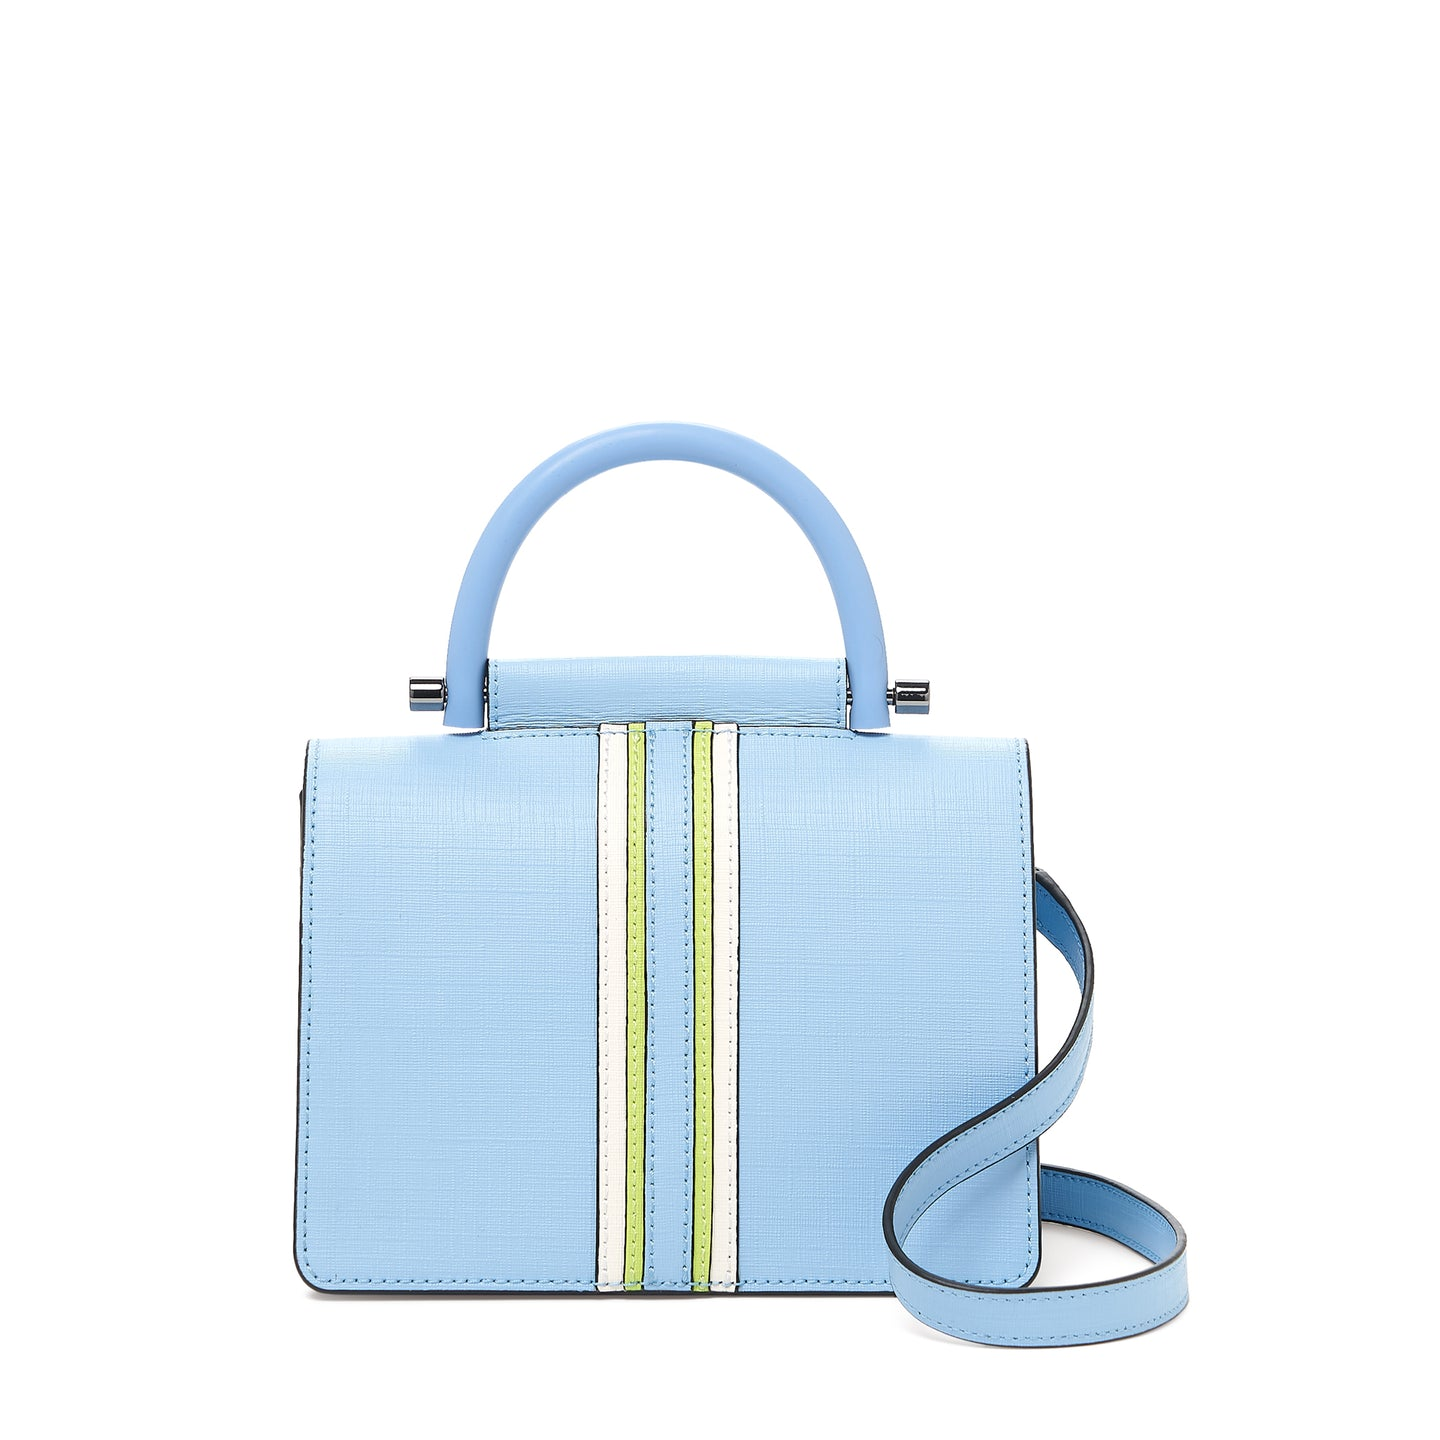 botkier austin top handle crossbody blue cadet front